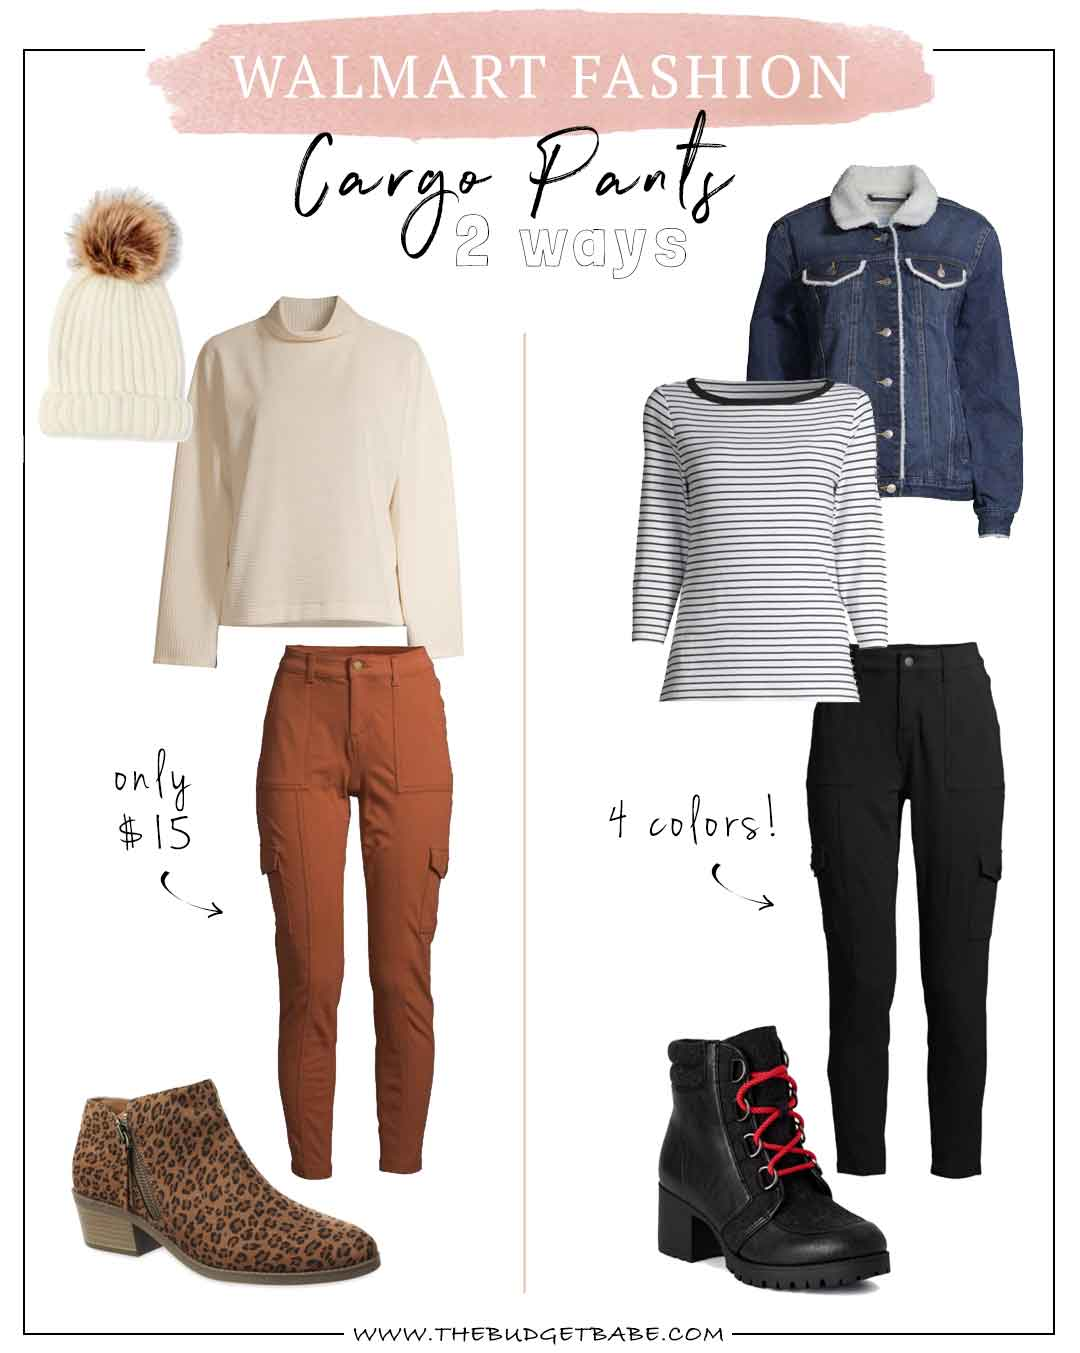 Walmart Fashion Blogger styles $15 cargo pants two ways